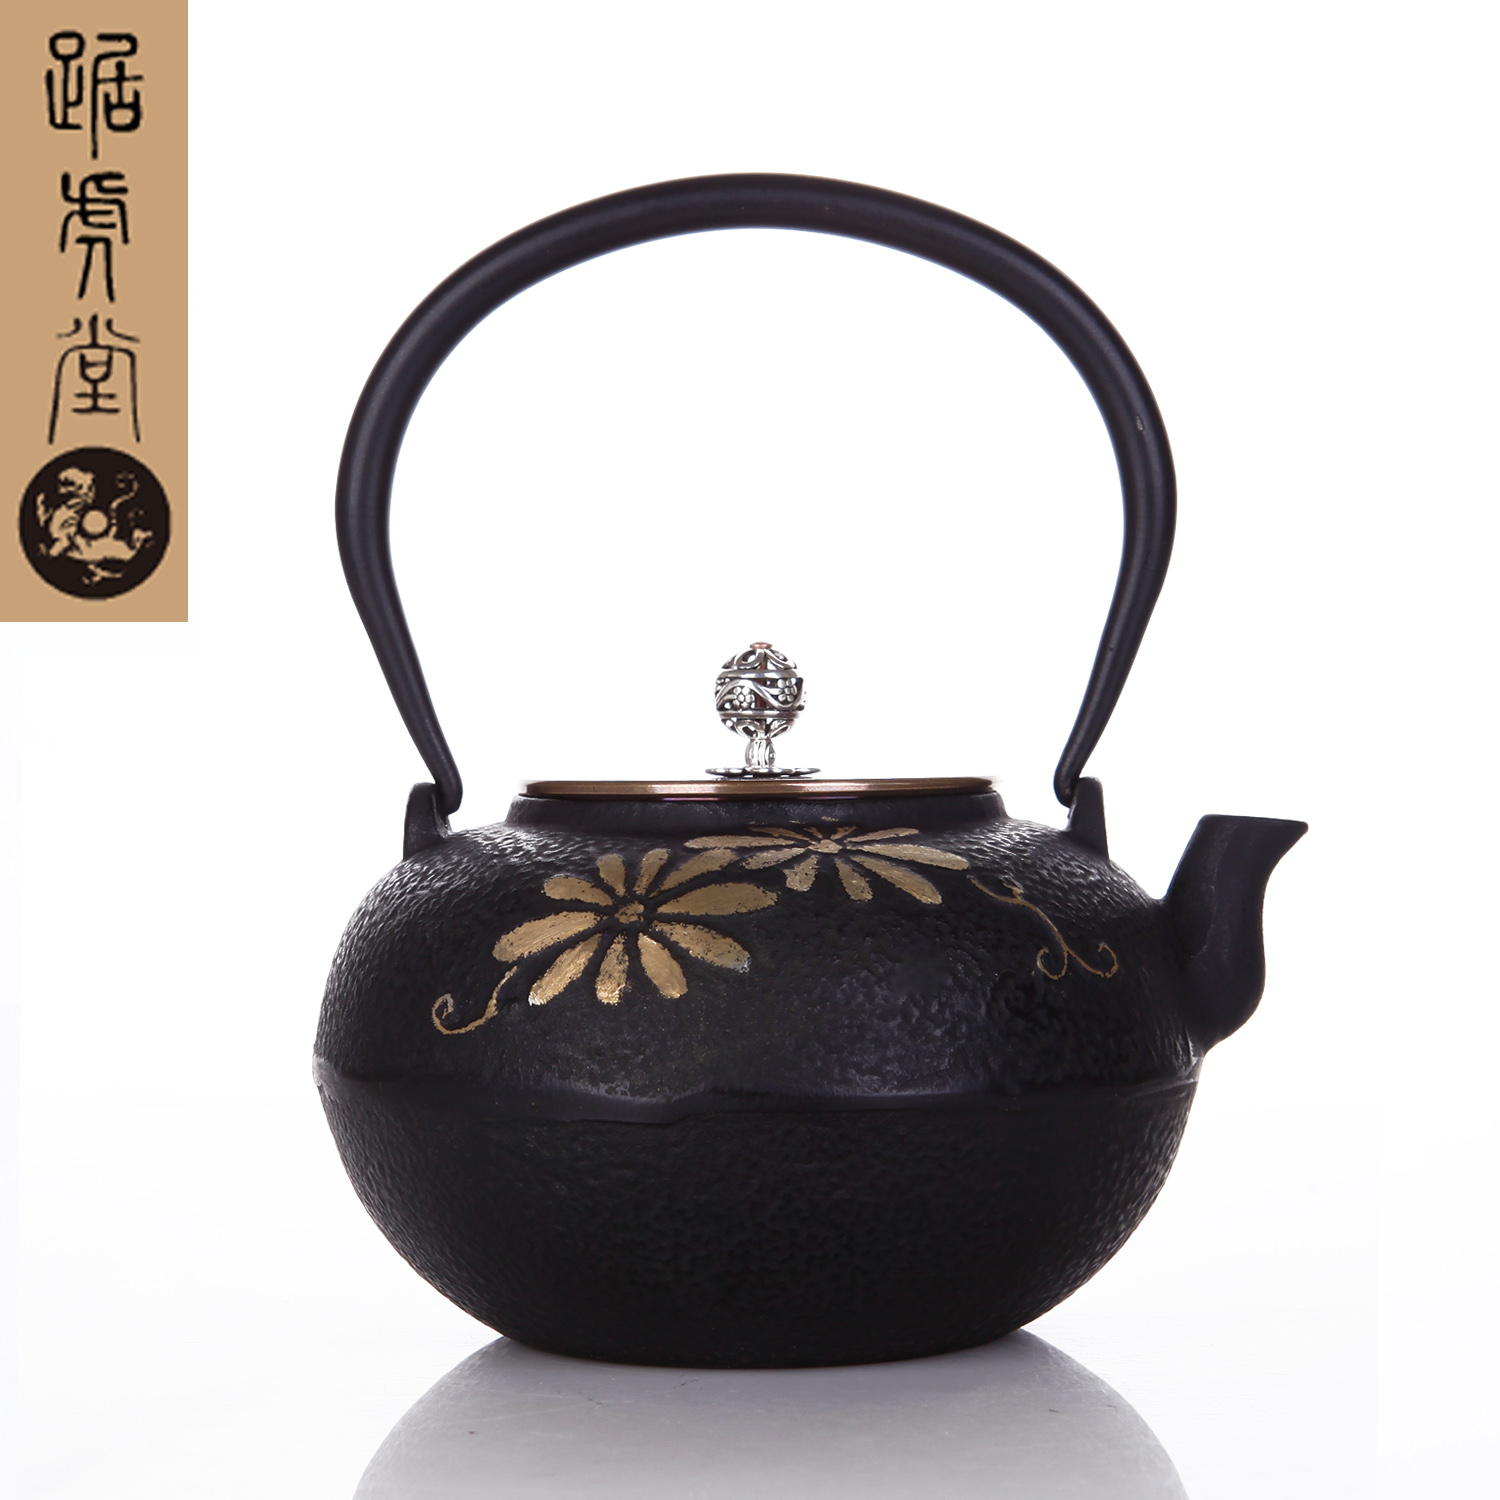 Genuine tiger hall squat iron pot of gold a 24-karat gold inlaid new cast iron teapot kettle teapot kettle boils